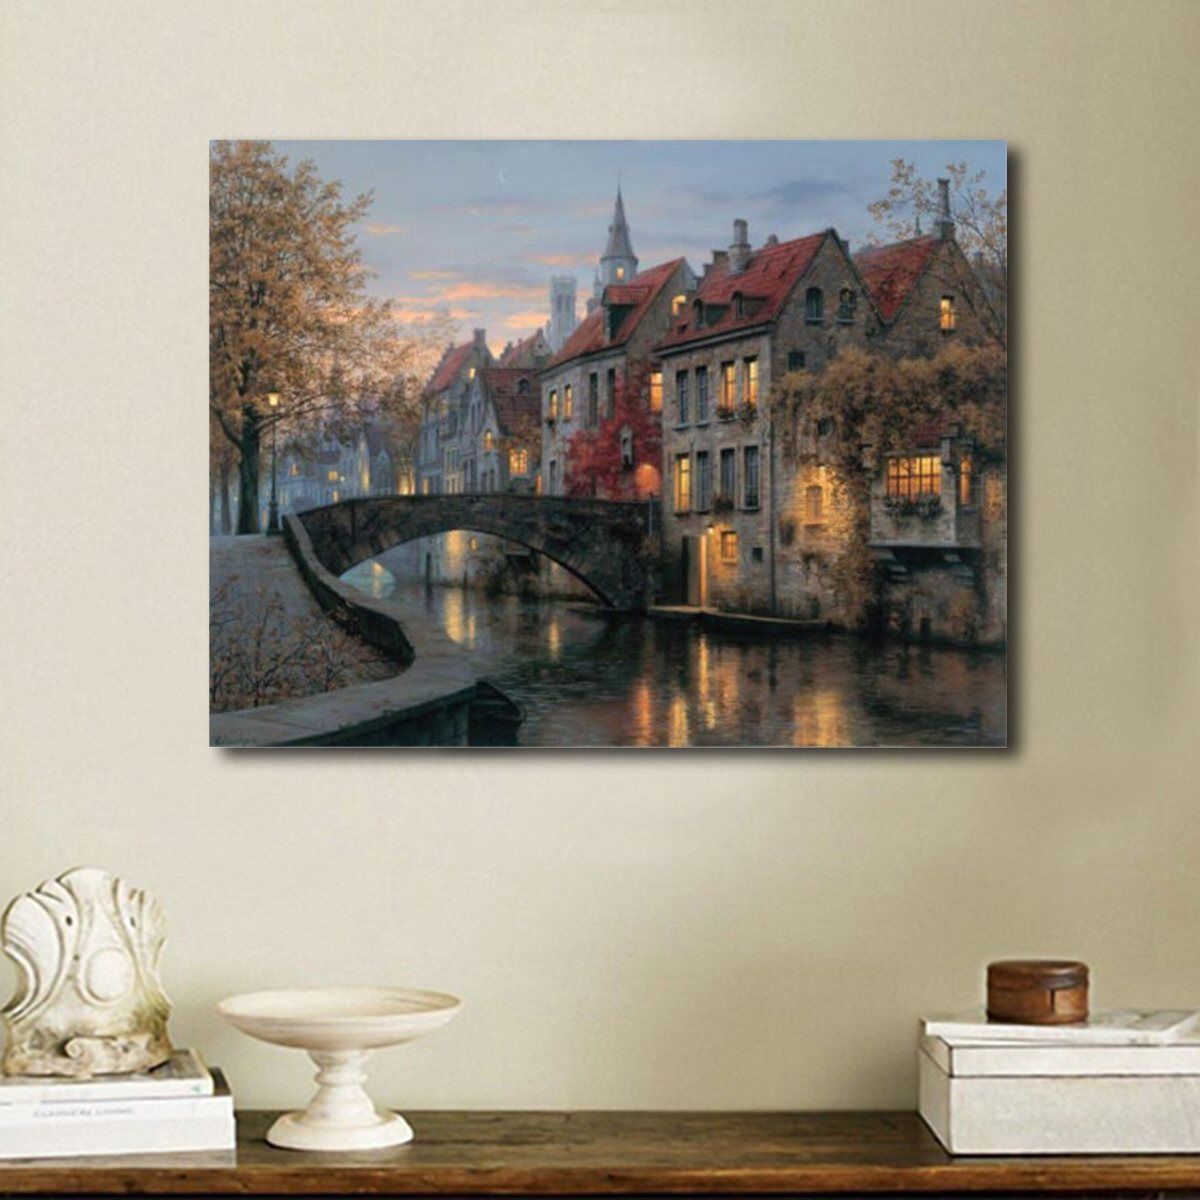 Modern river house canvas painting 40x30cm scenic pictures mural modern river house canvas painting 40x30cm scenic pictures mural painting home room wall art decorative craftwork no frame in flags banners accessories jeuxipadfo Images